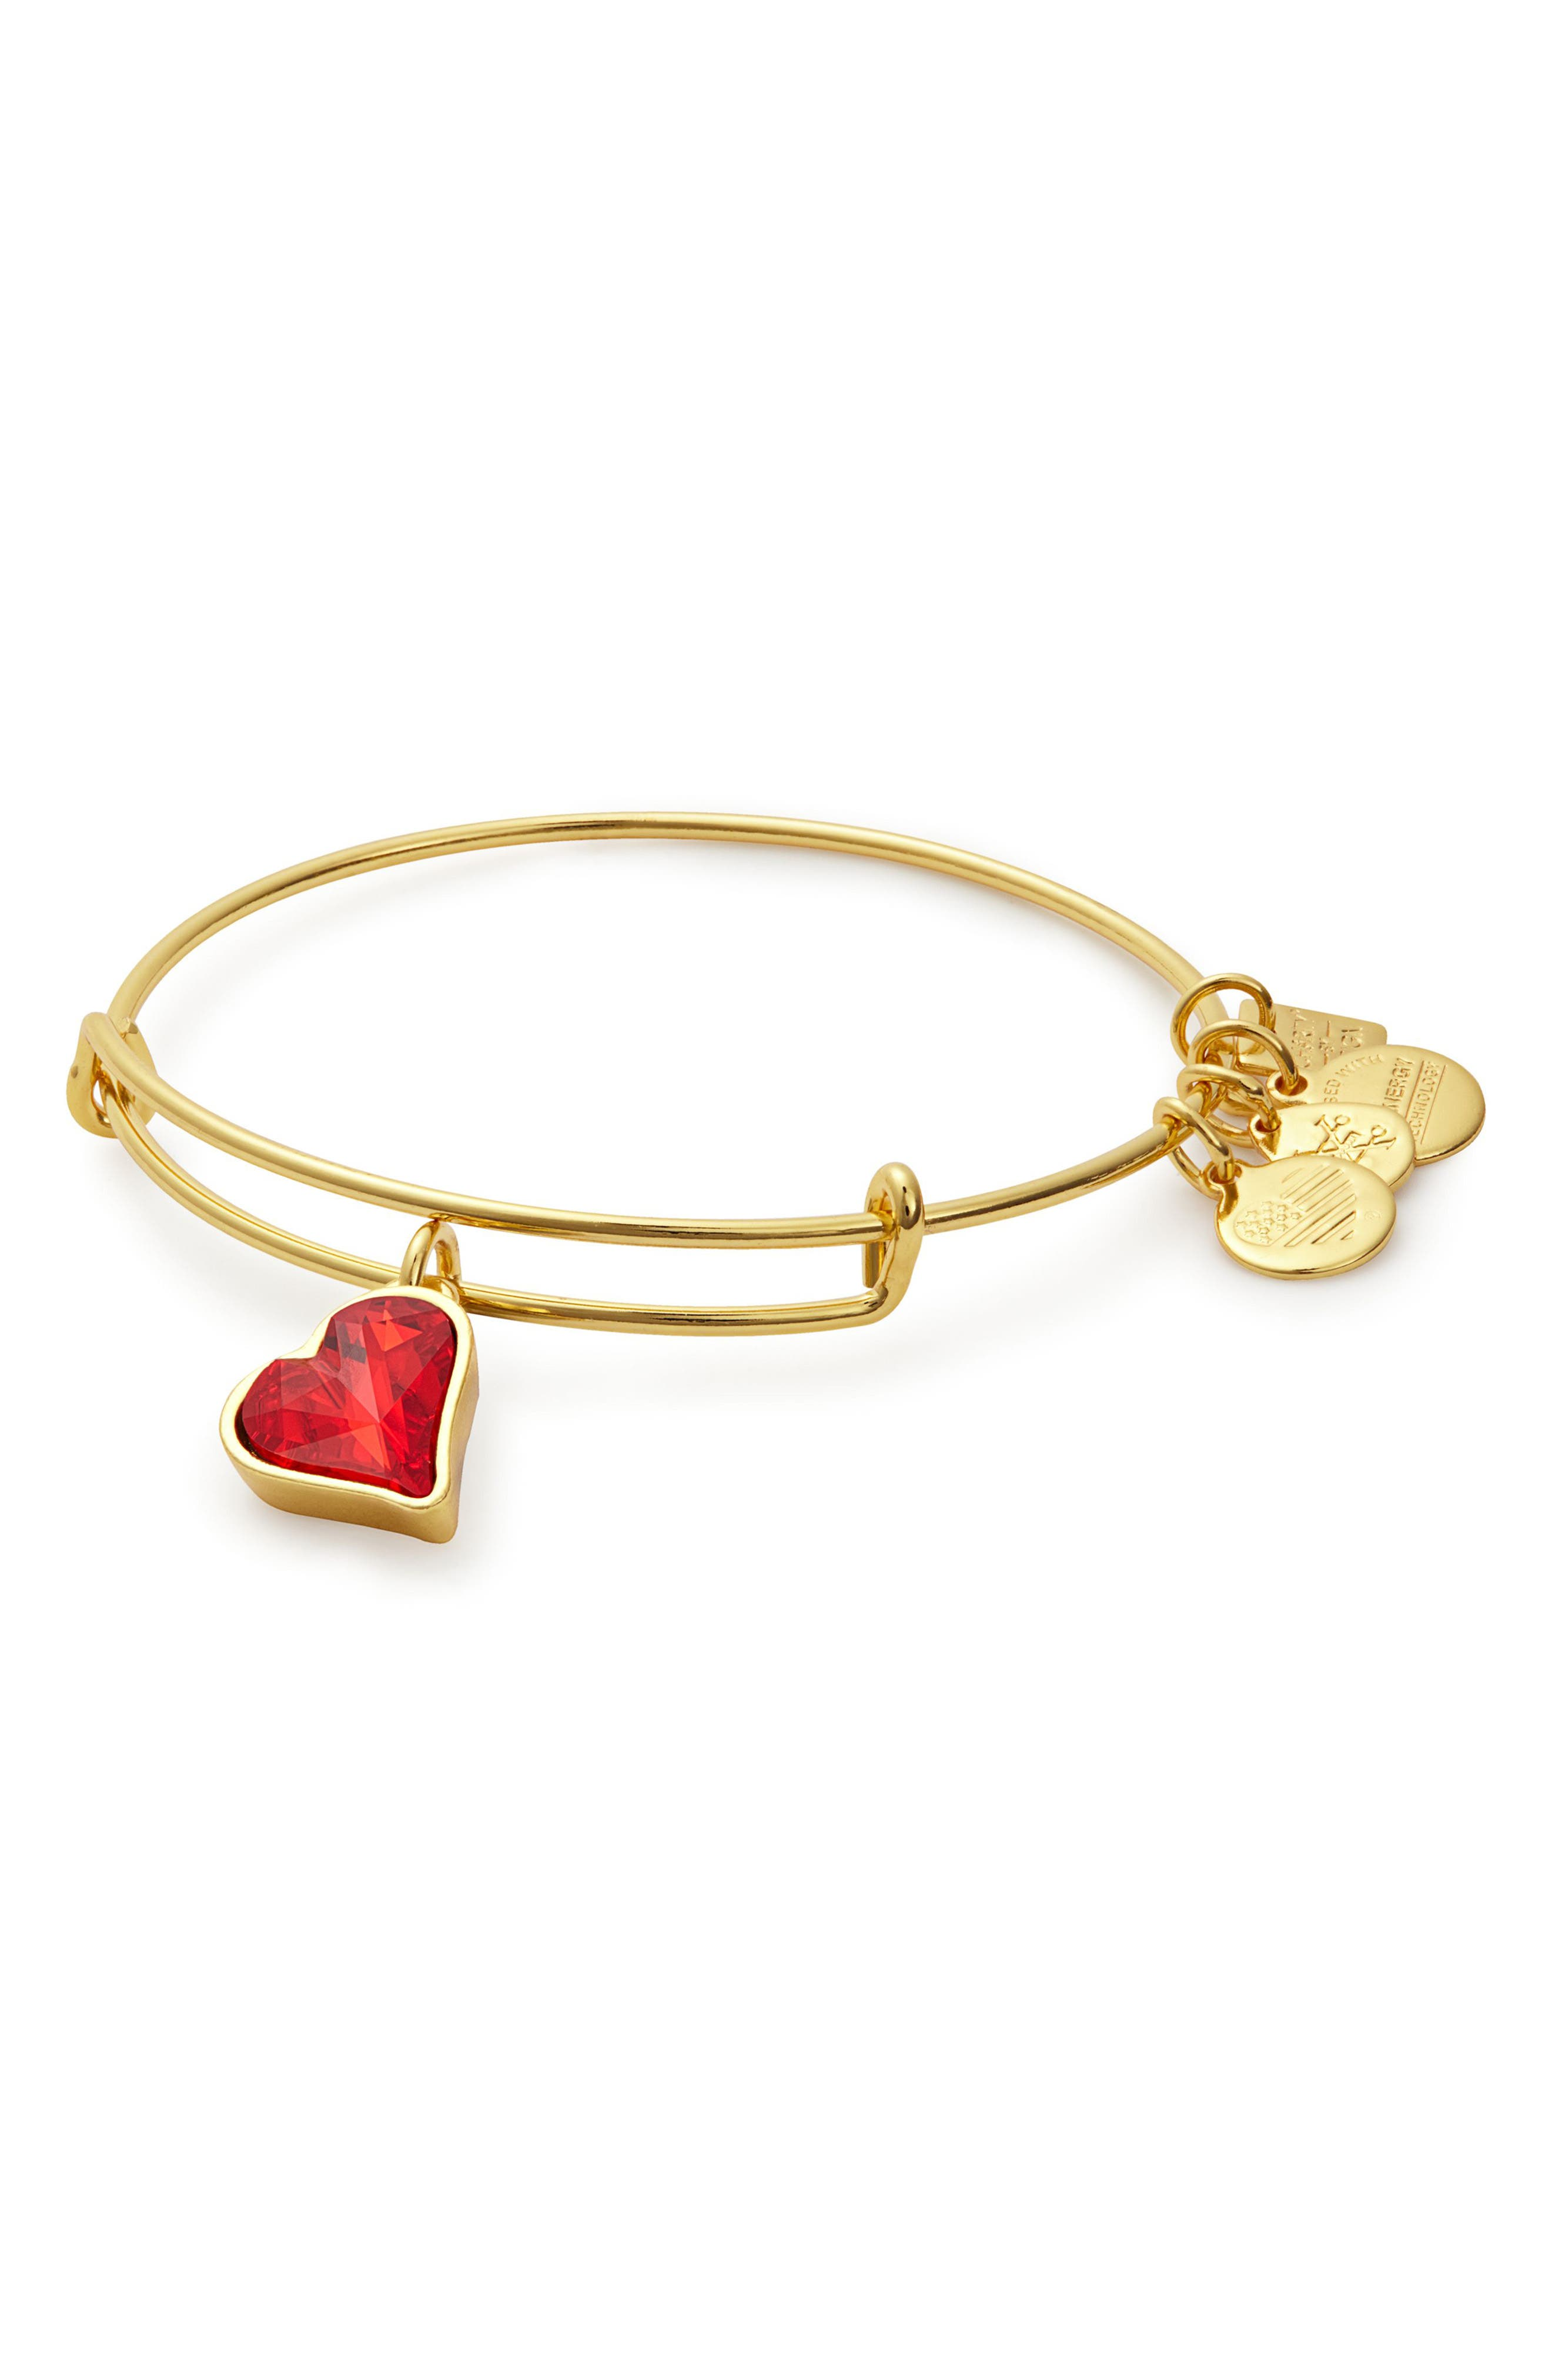 Alex and Ani (PRODUCT) RED Heart of Strength Expandable Charm Bracelet